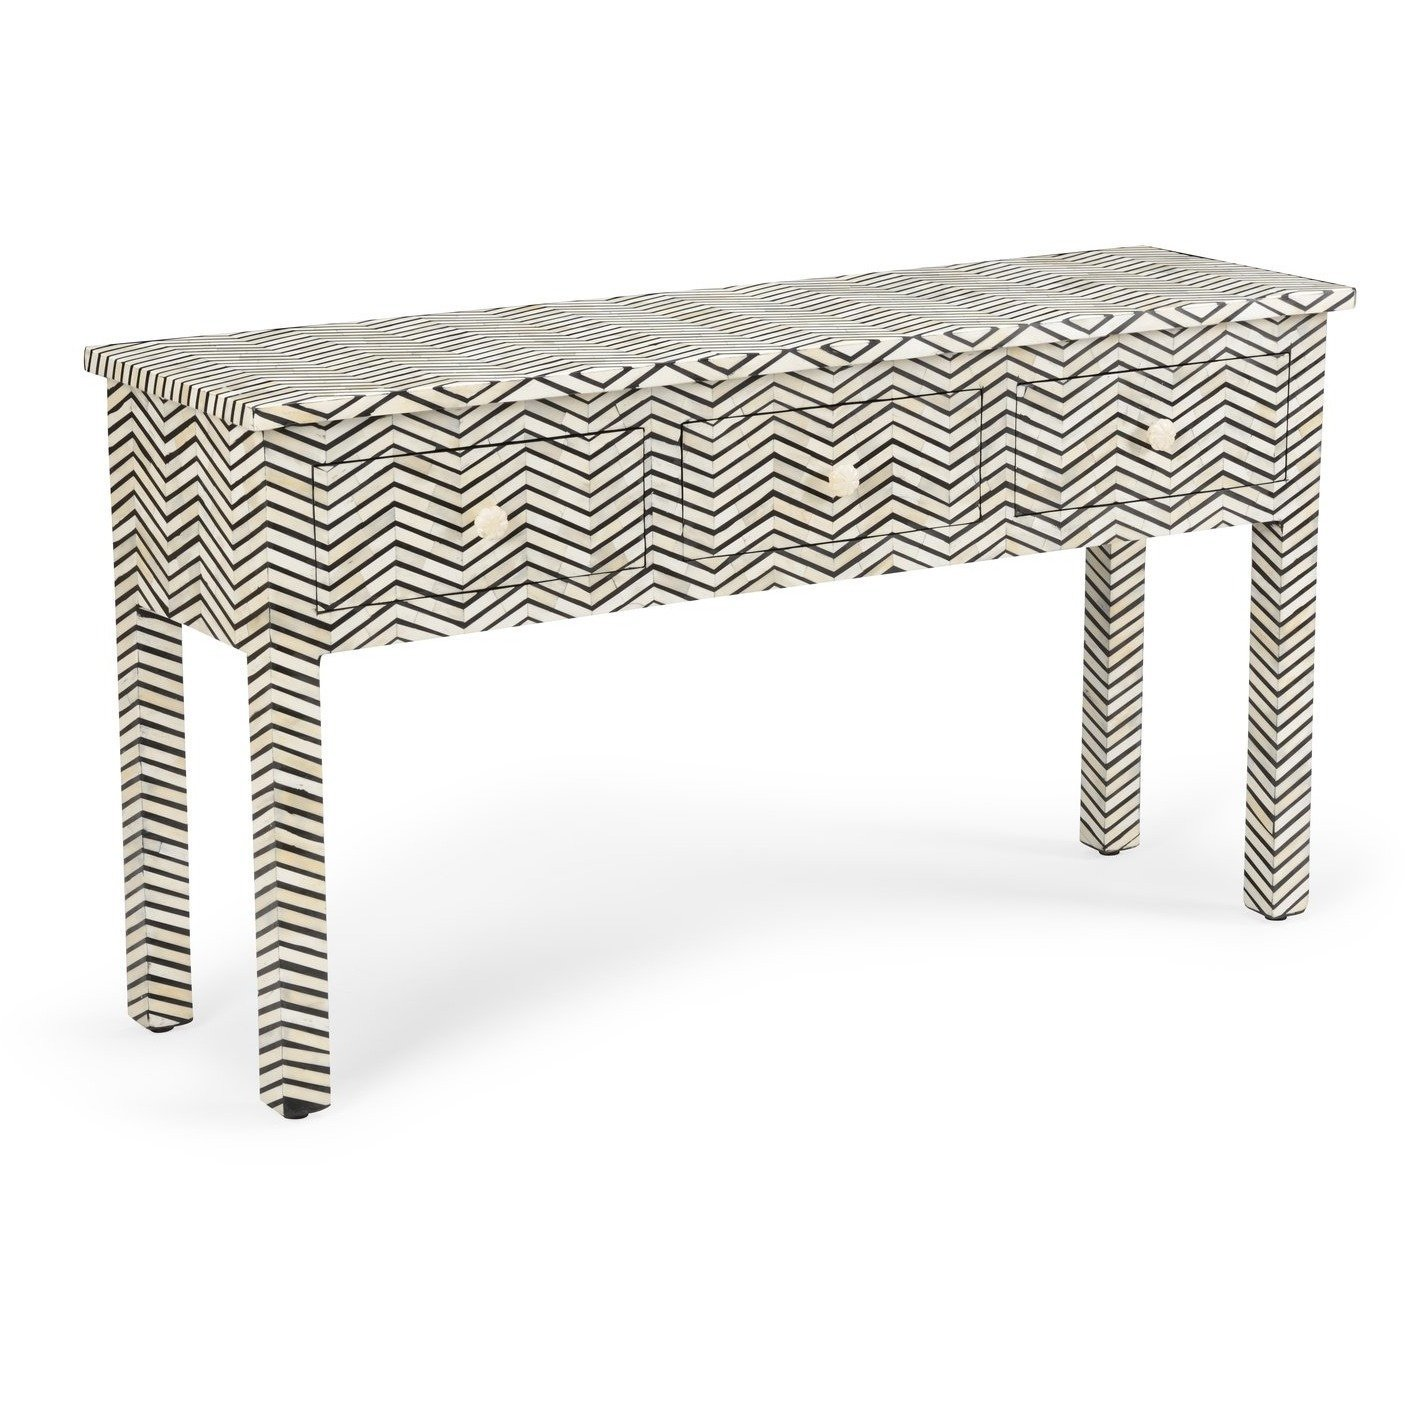 Lovecup Chevron Bone Console Table - LOVECUP